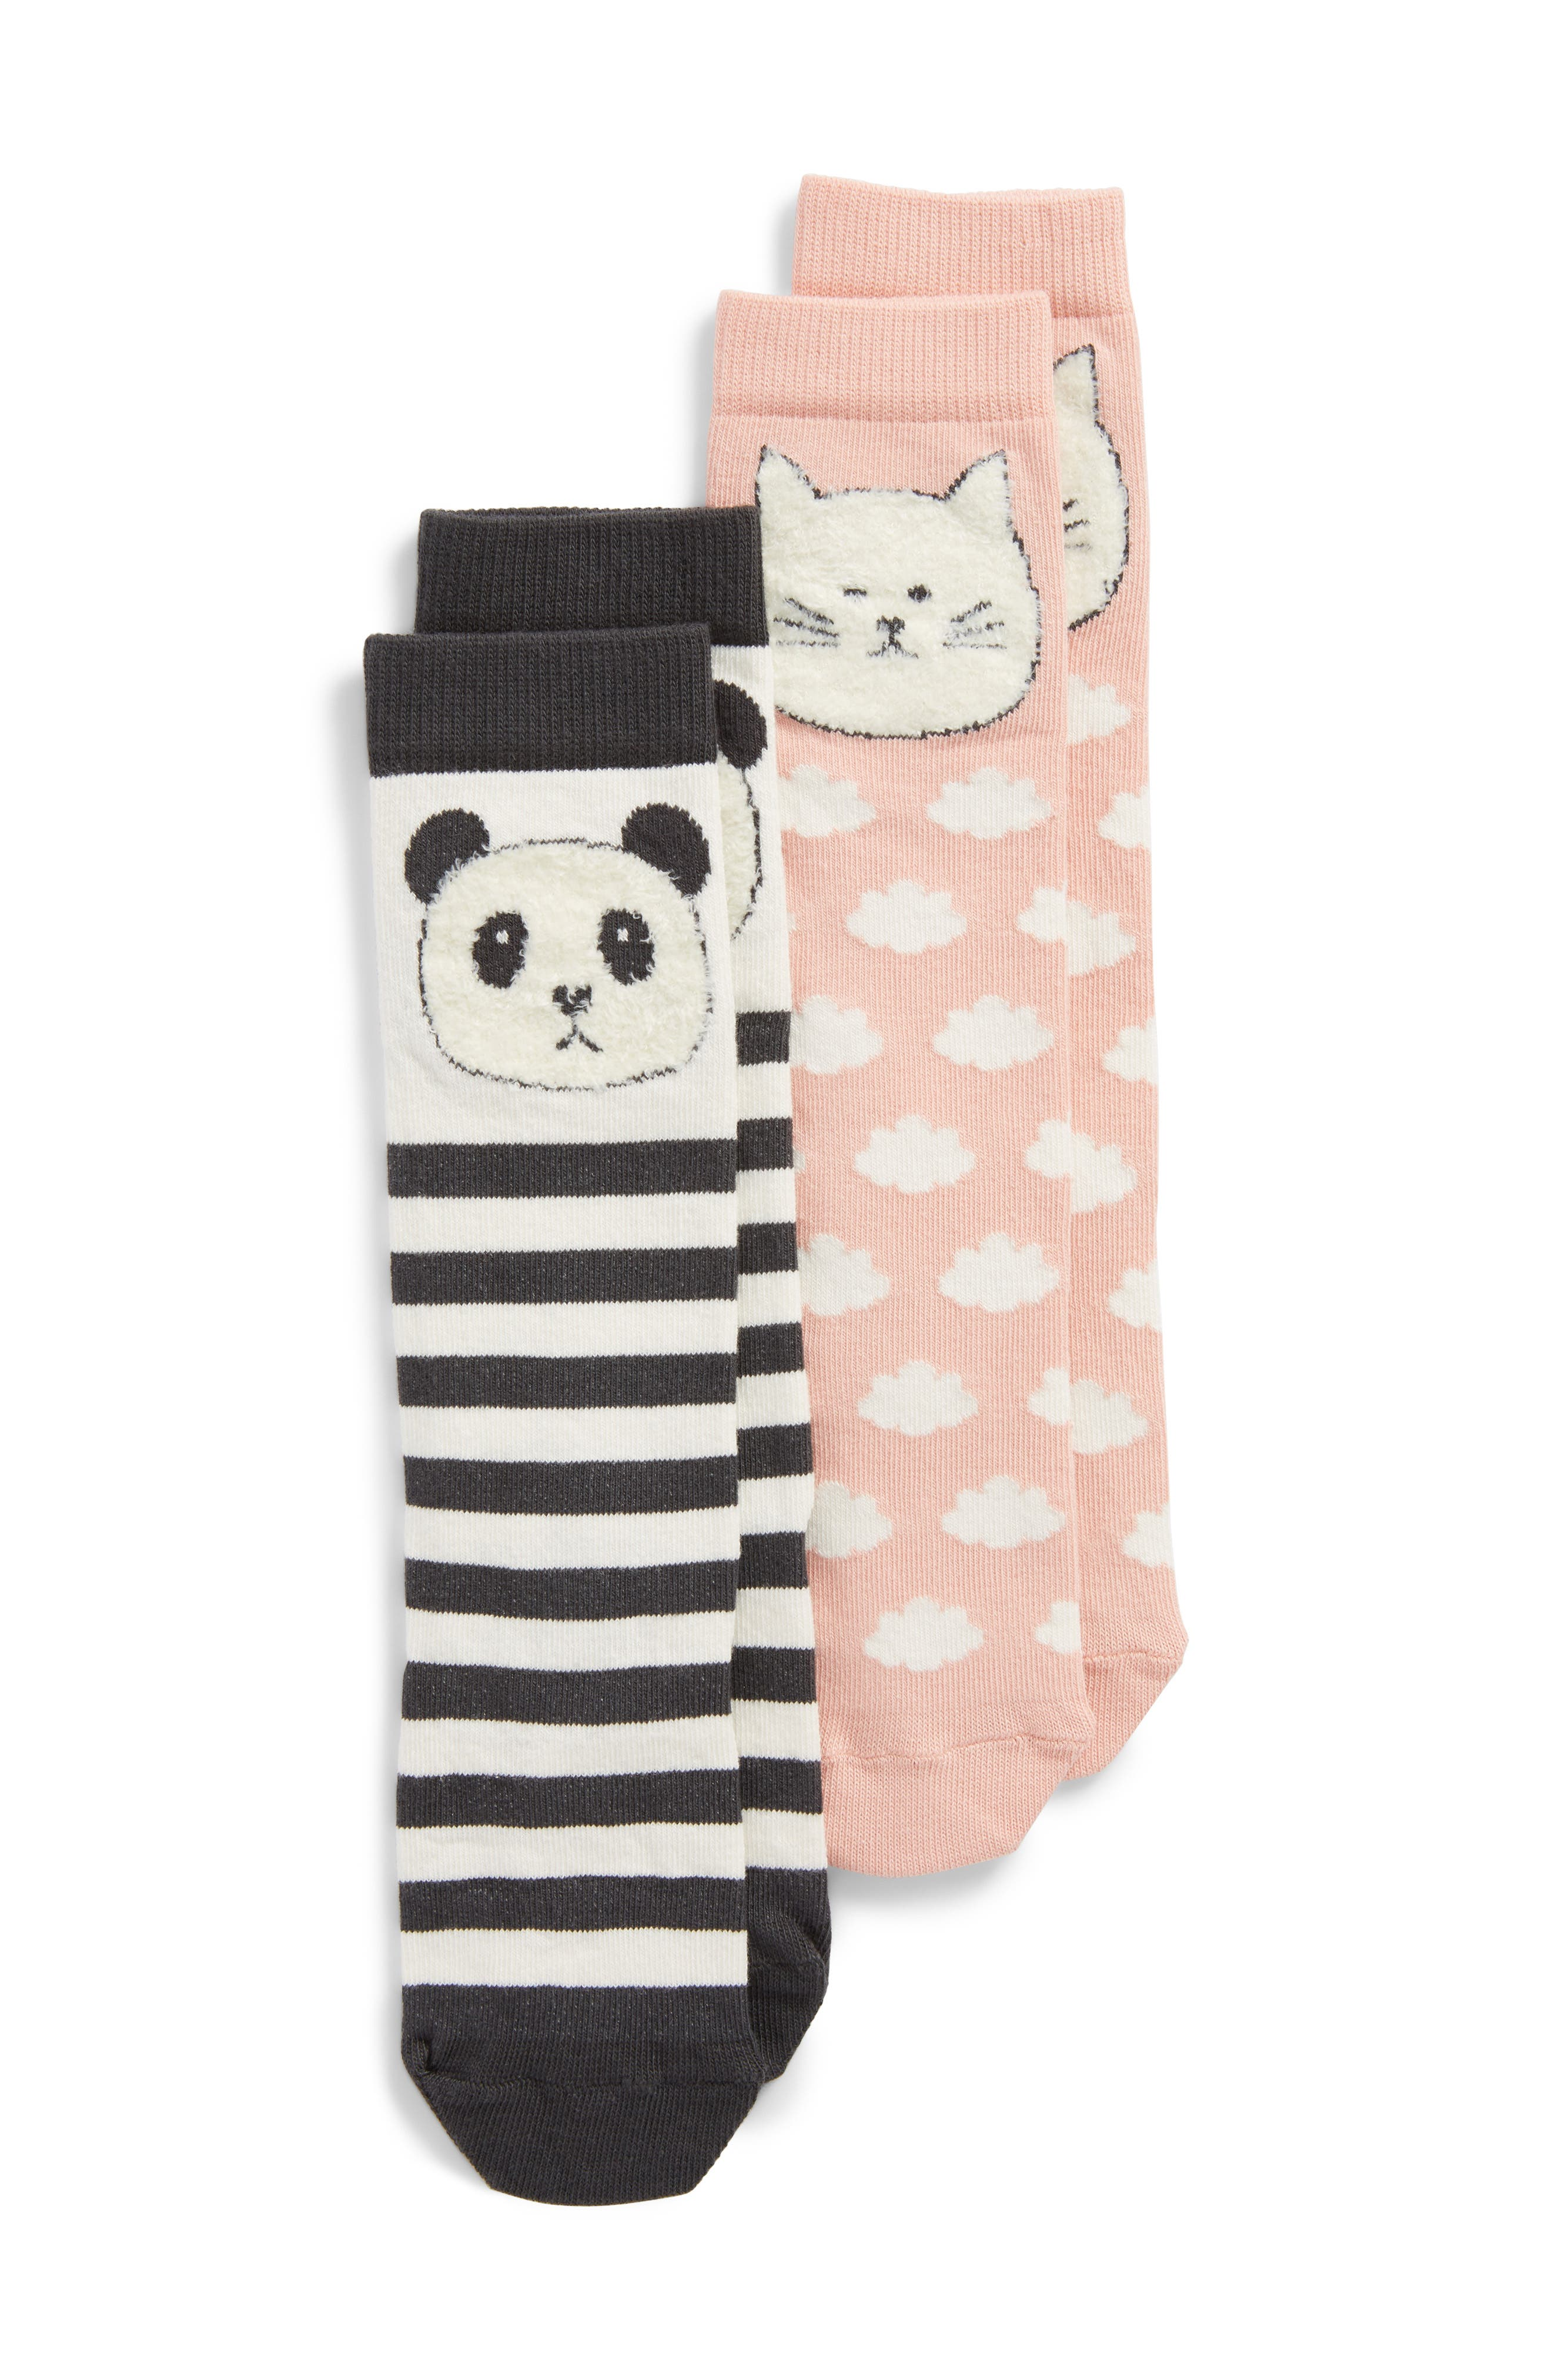 2-Pack Critter Knee Socks,                             Main thumbnail 1, color,                             Charcoal Stripe Multi